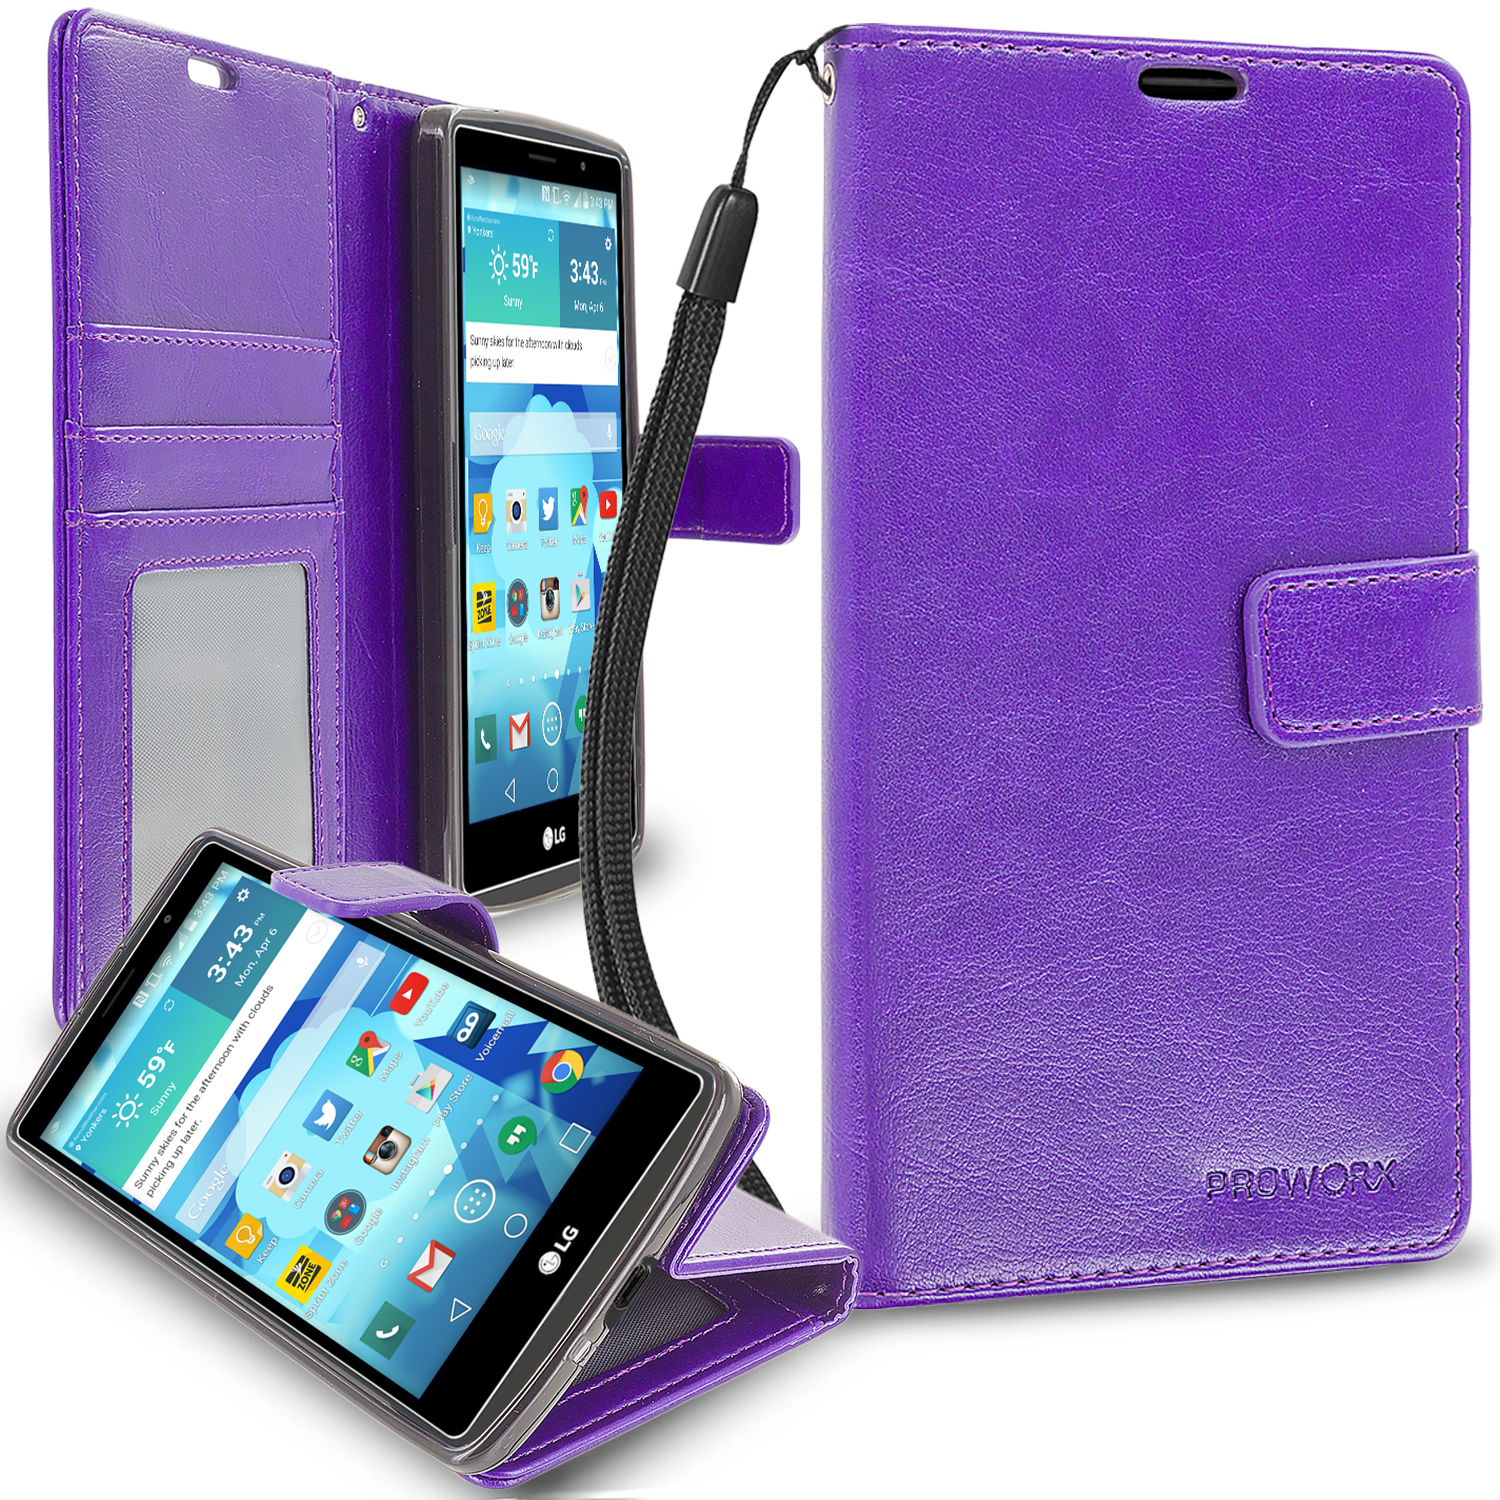 LG G Vista 2 Purple ProWorx Wallet Case Luxury PU Leather Case Cover With Card Slots & Stand